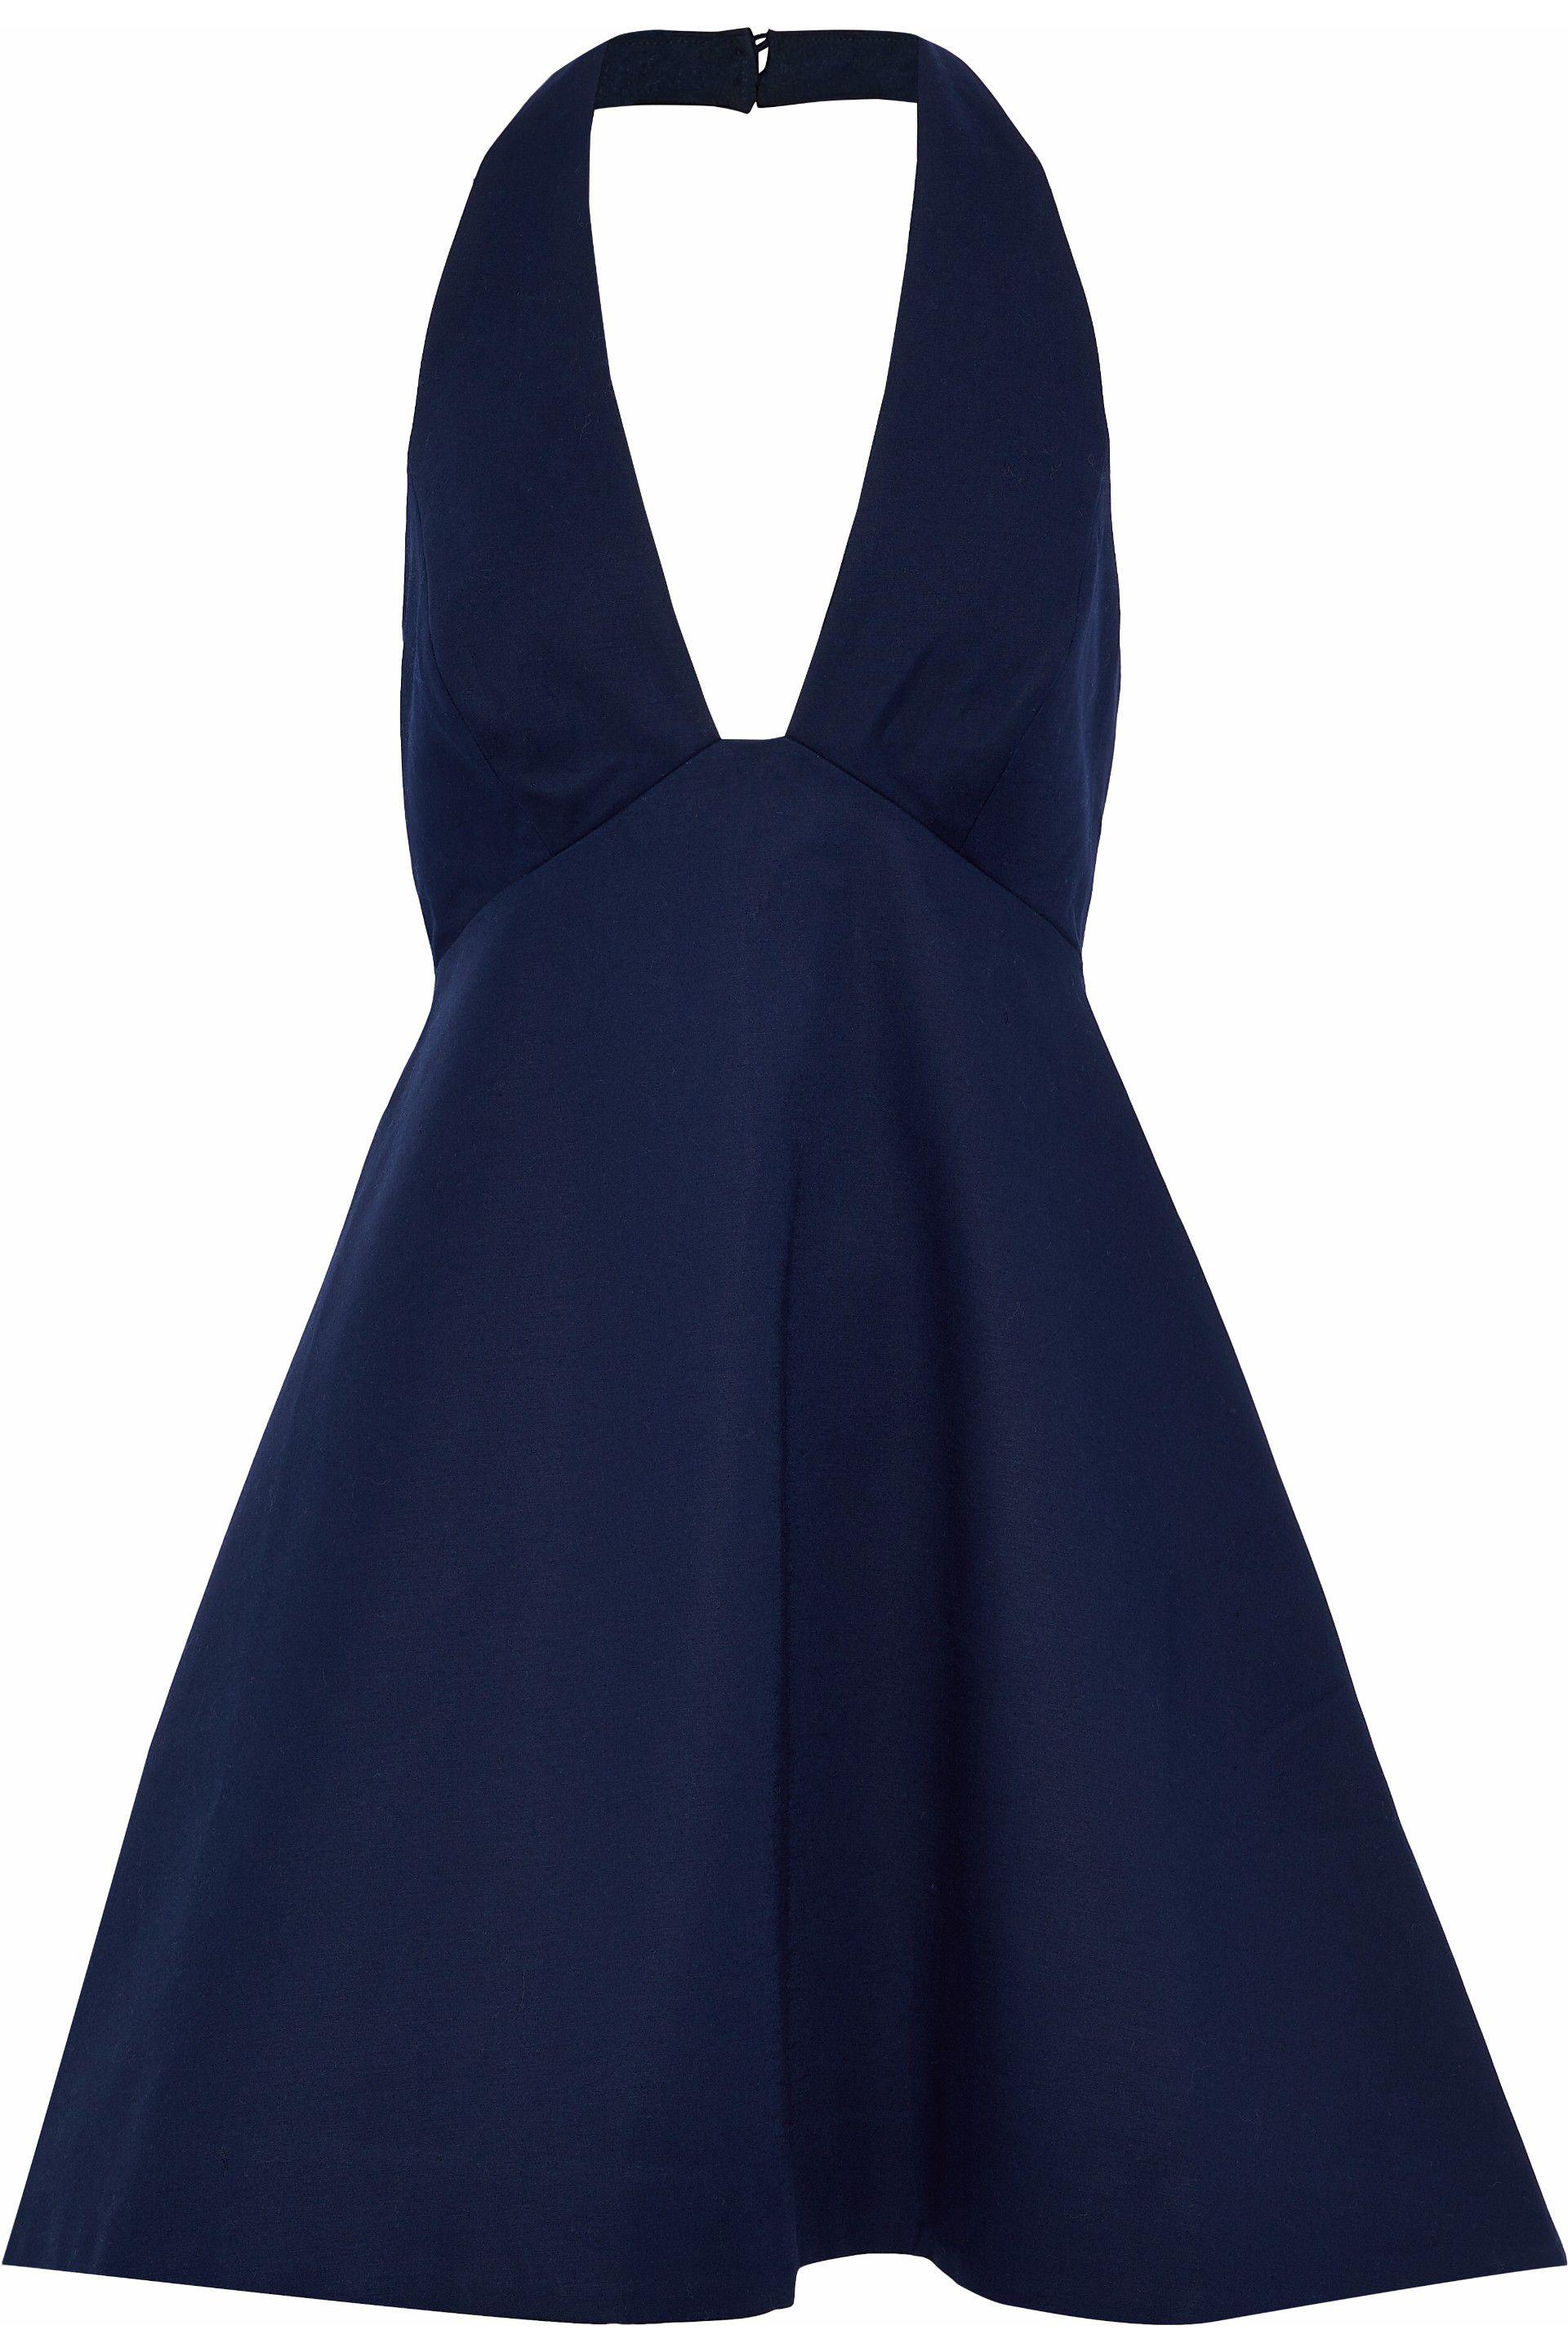 Big Sale Cheap Online Halston Heritage Woman Fluted Stretch-cotton Halterneck Dress Navy Size 10 Halston Heritage Discount Newest Where To Buy Cheap Real Cheap Fashionable 2018 Newest Sale Online HmYZUACHWC